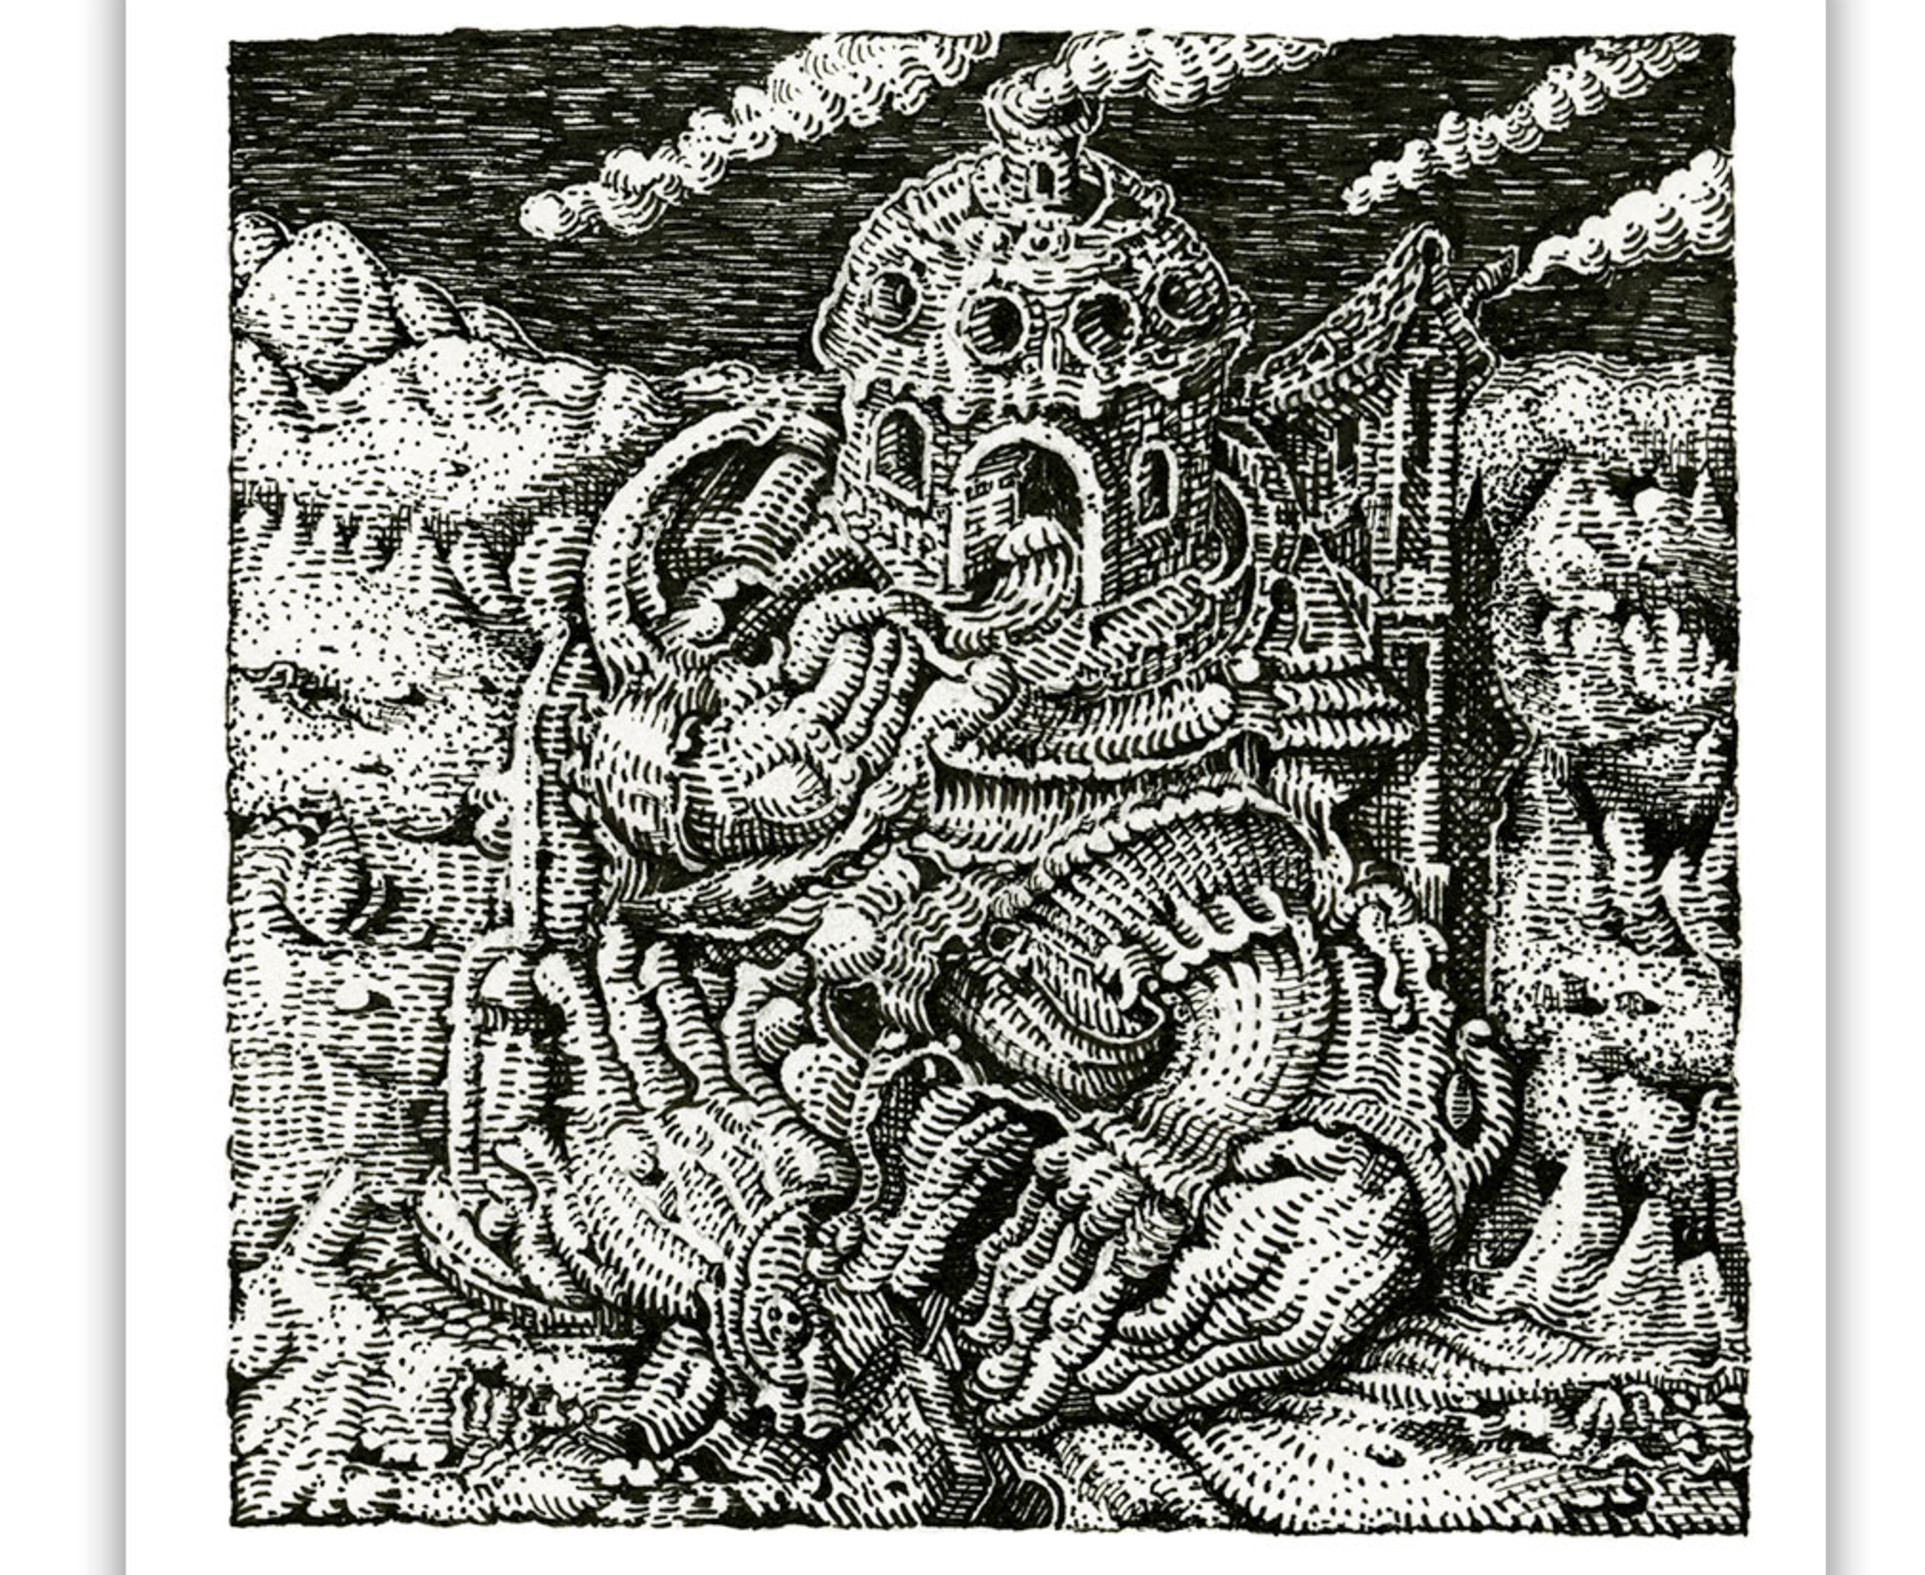 David Welker, Agreeing with Yourself